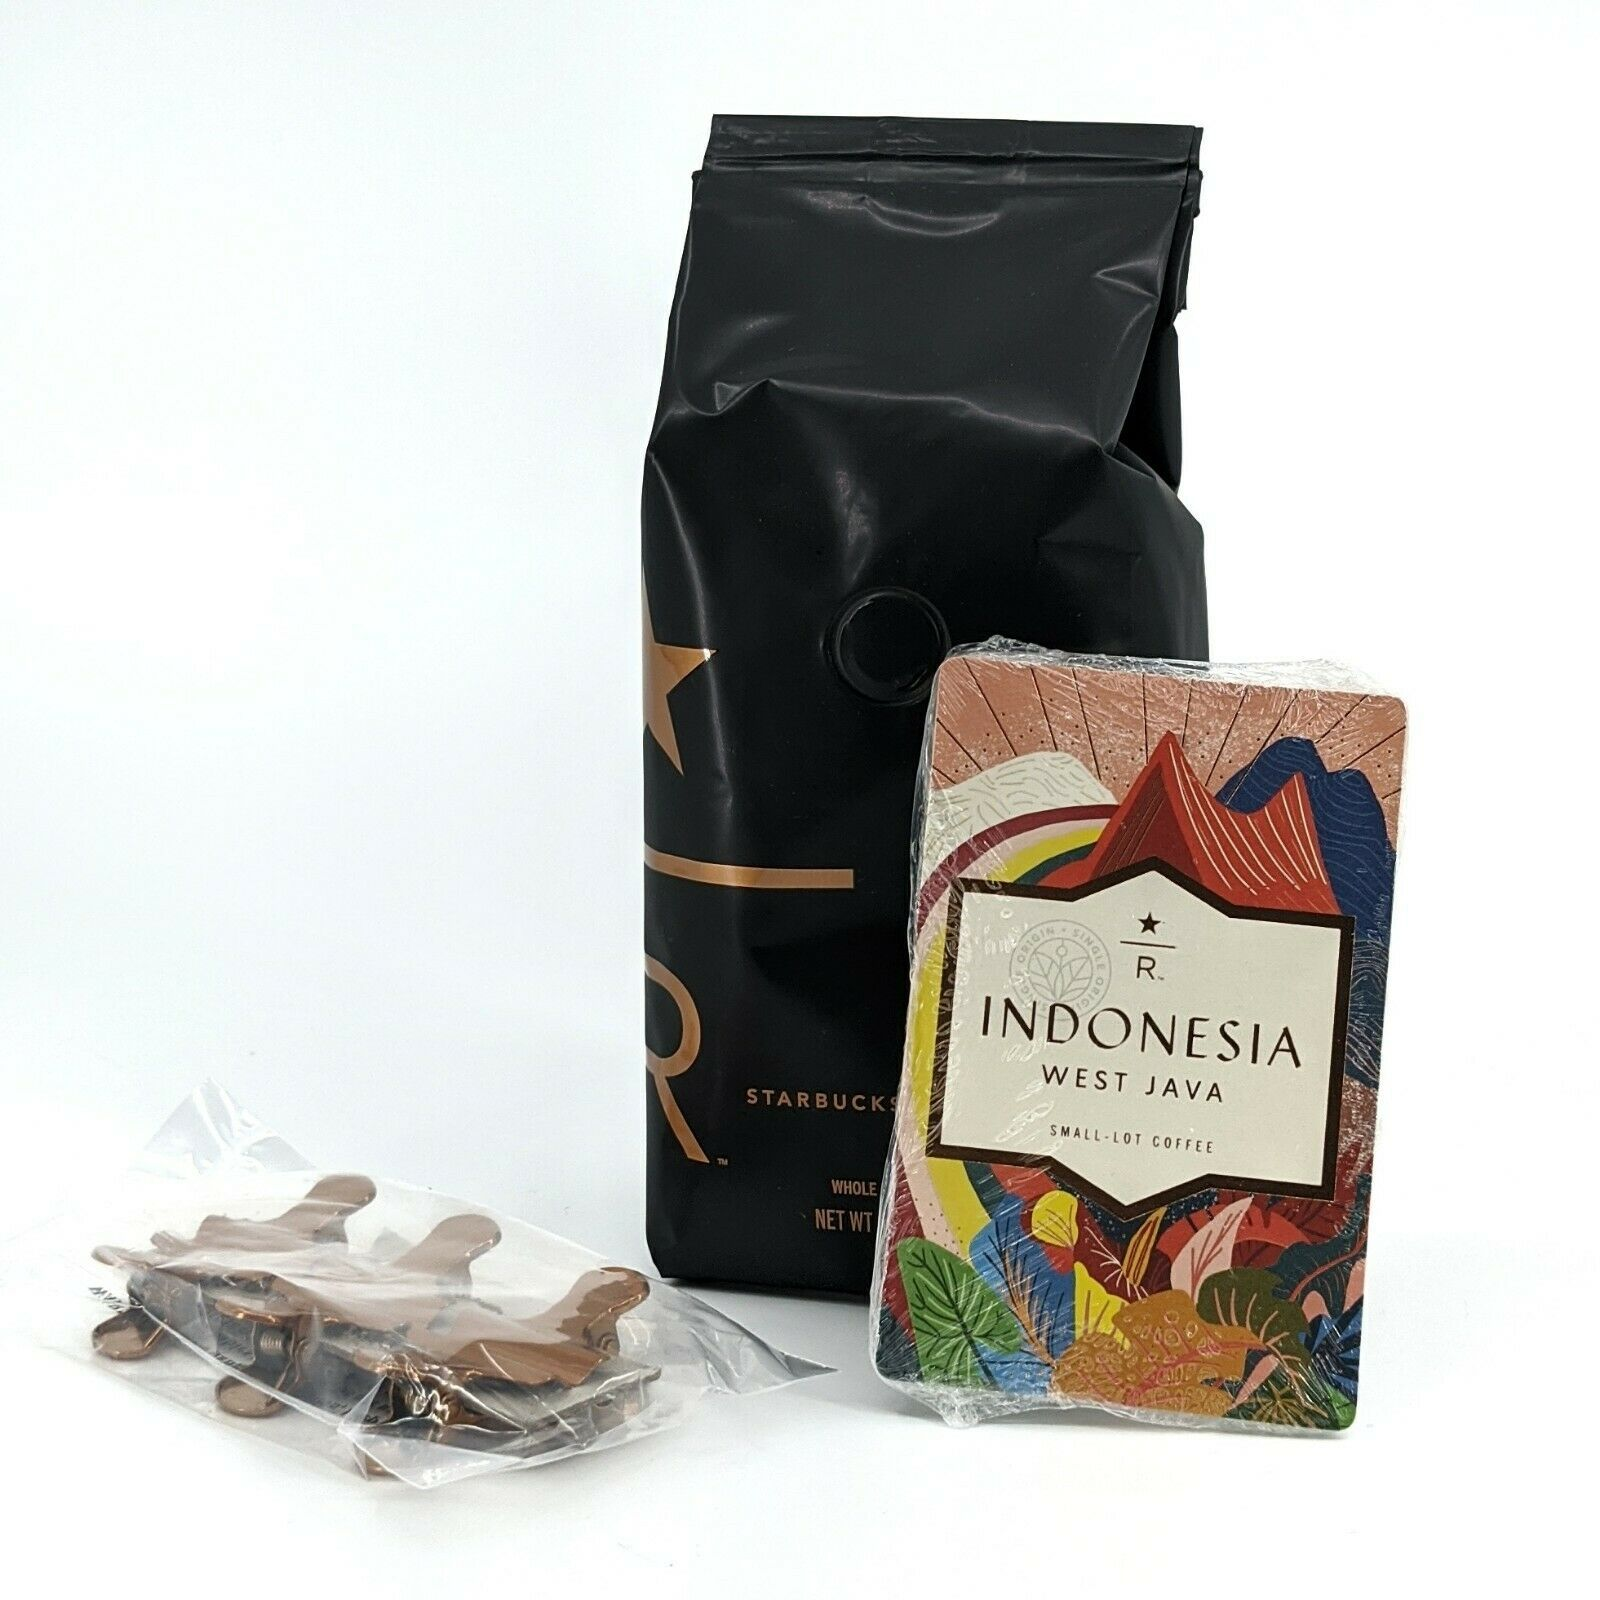 Details about 8.8OZ bag Starbucks Reserve INDONESIA WEST